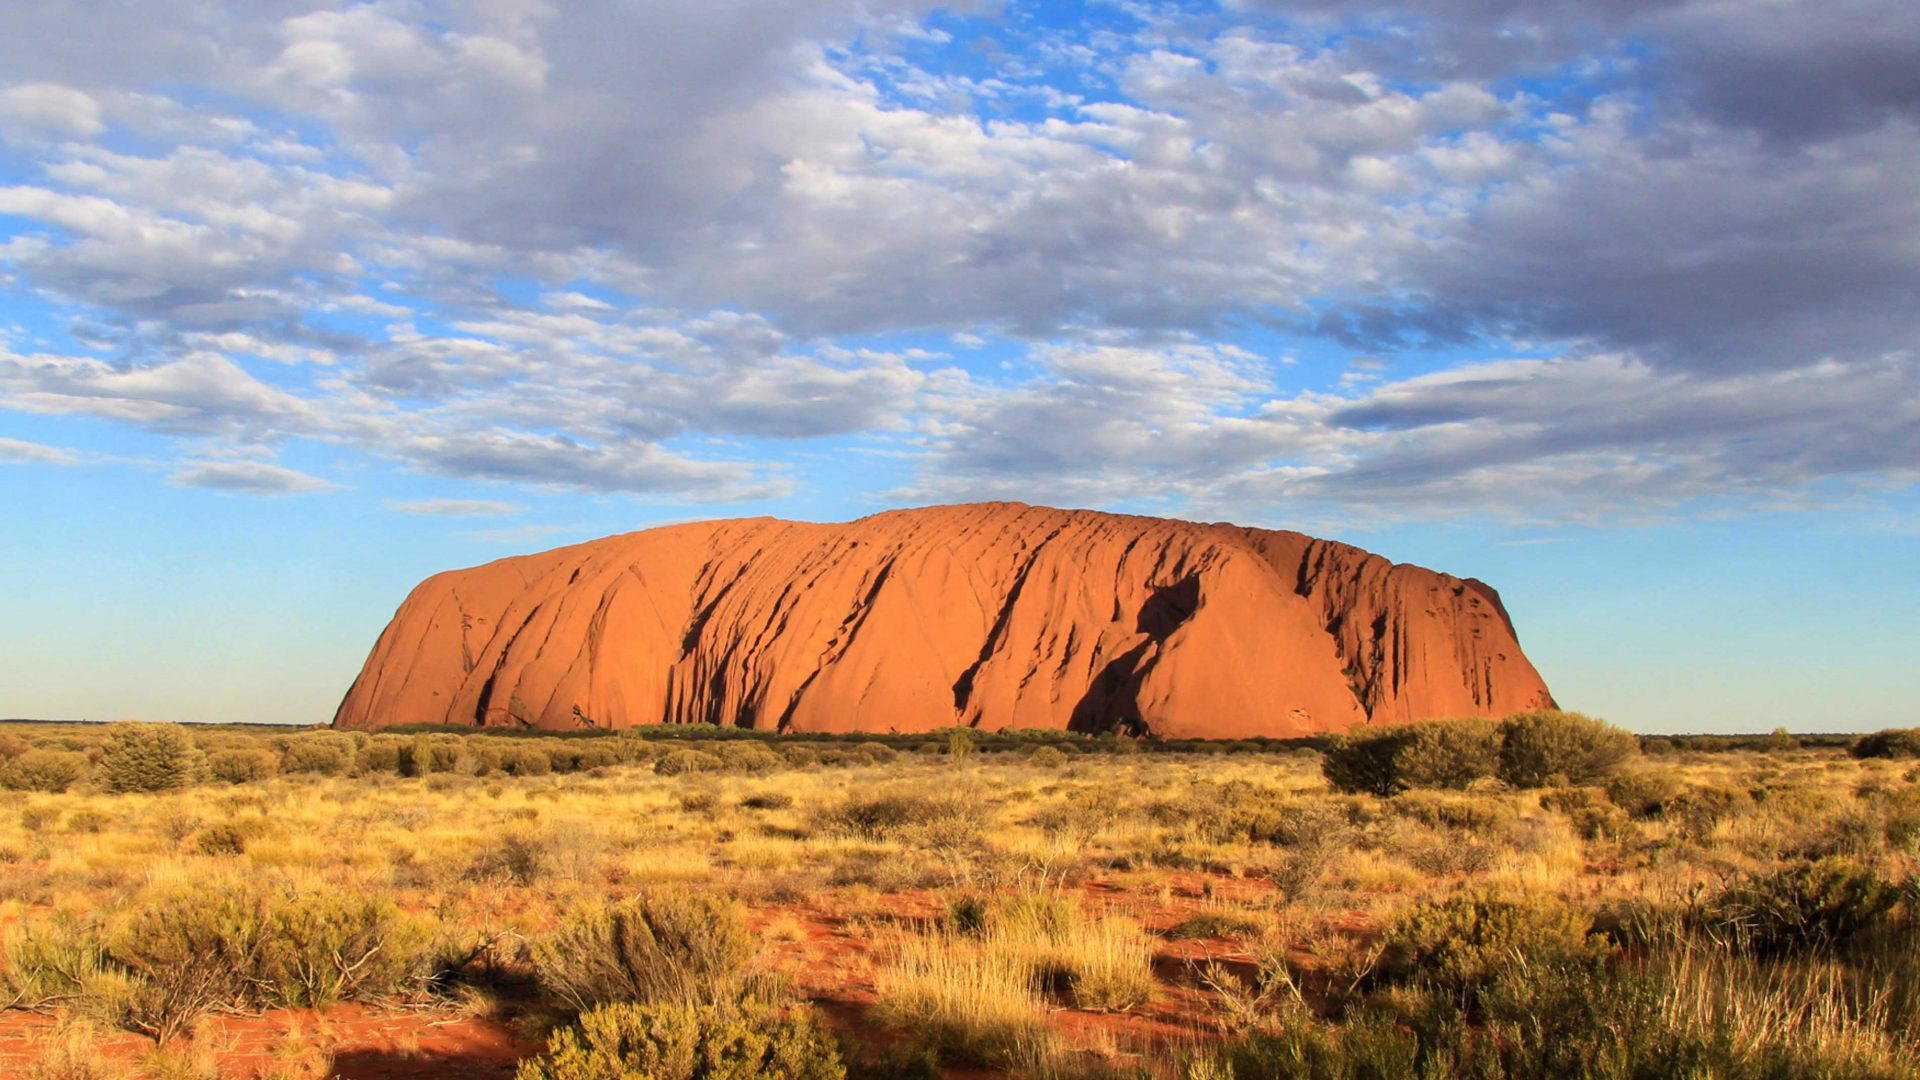 Aboriginal owners ban climbing Australia's sacred red rock